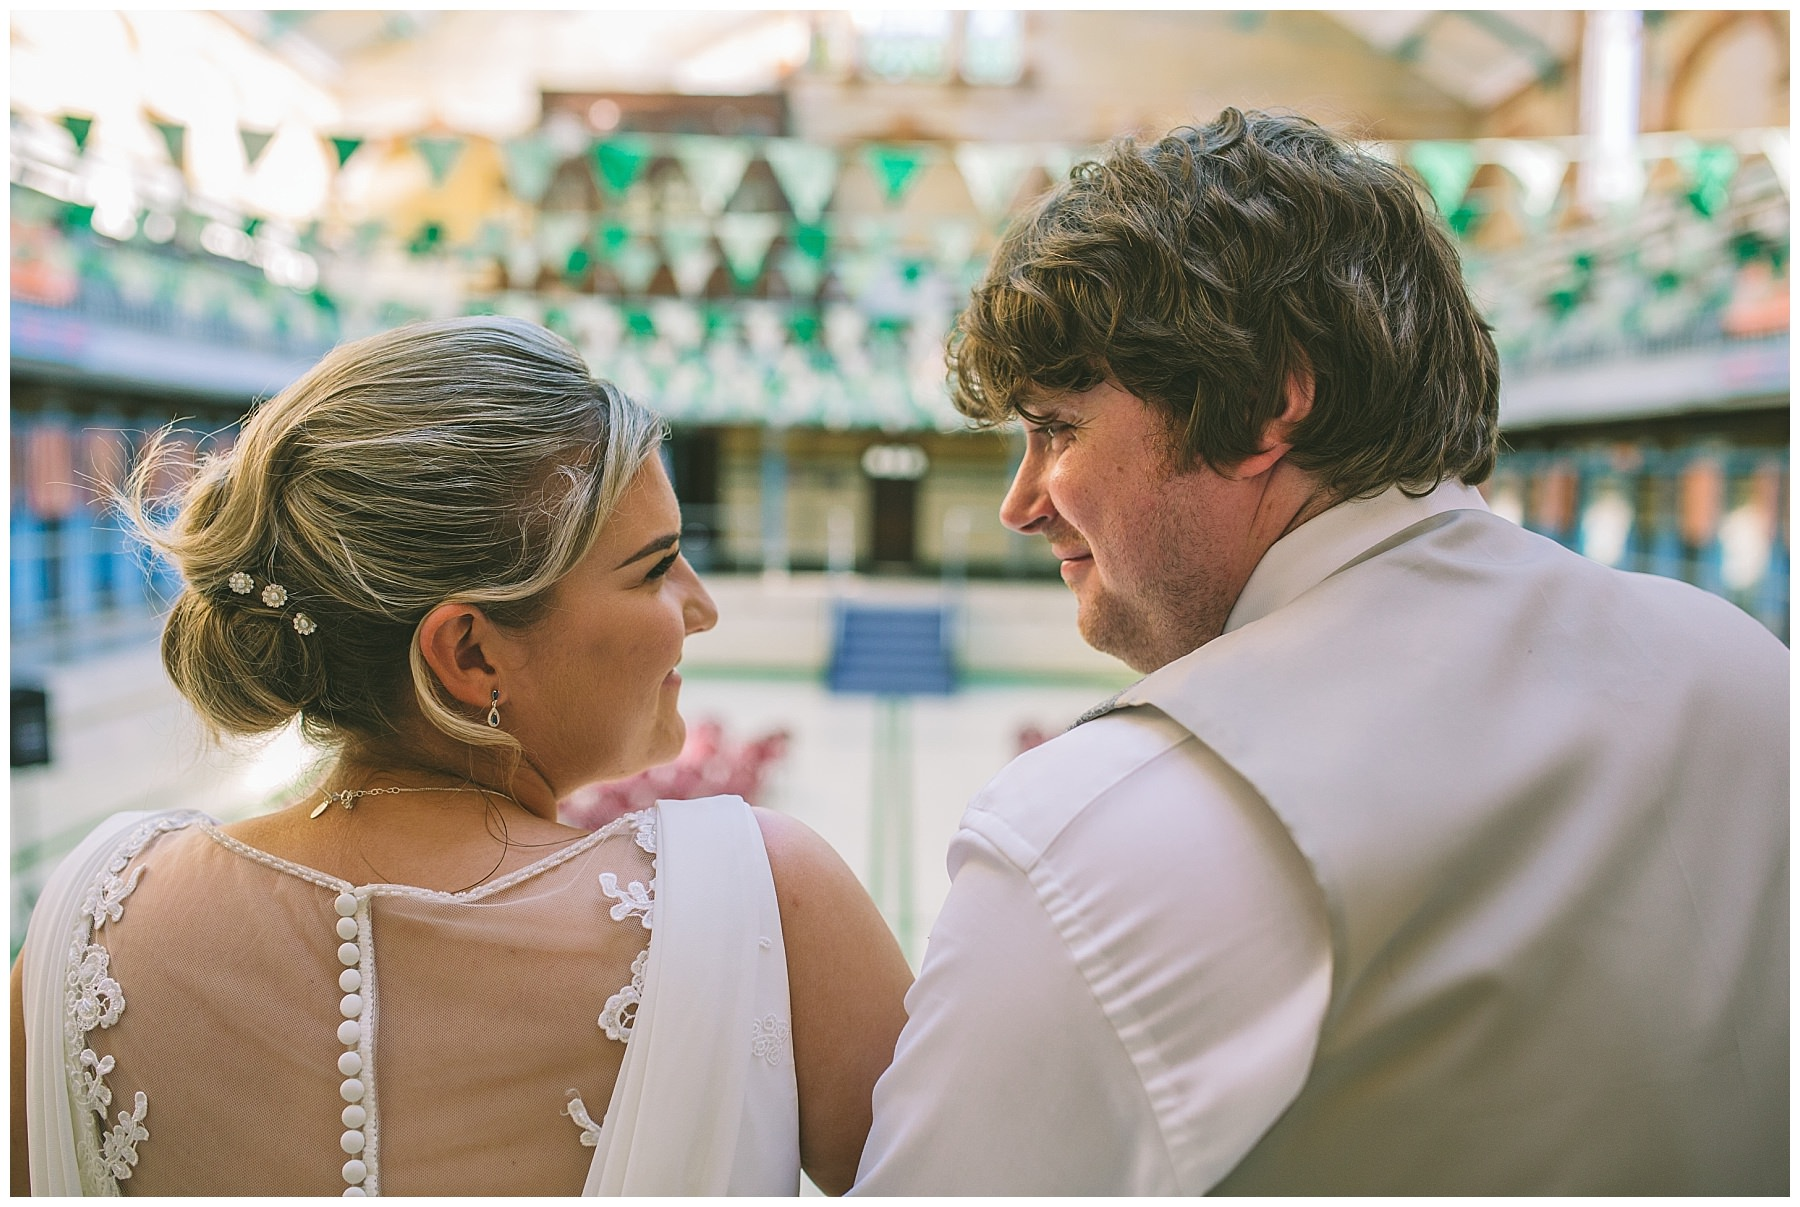 Husband and Wife share a moment at Victoria Baths